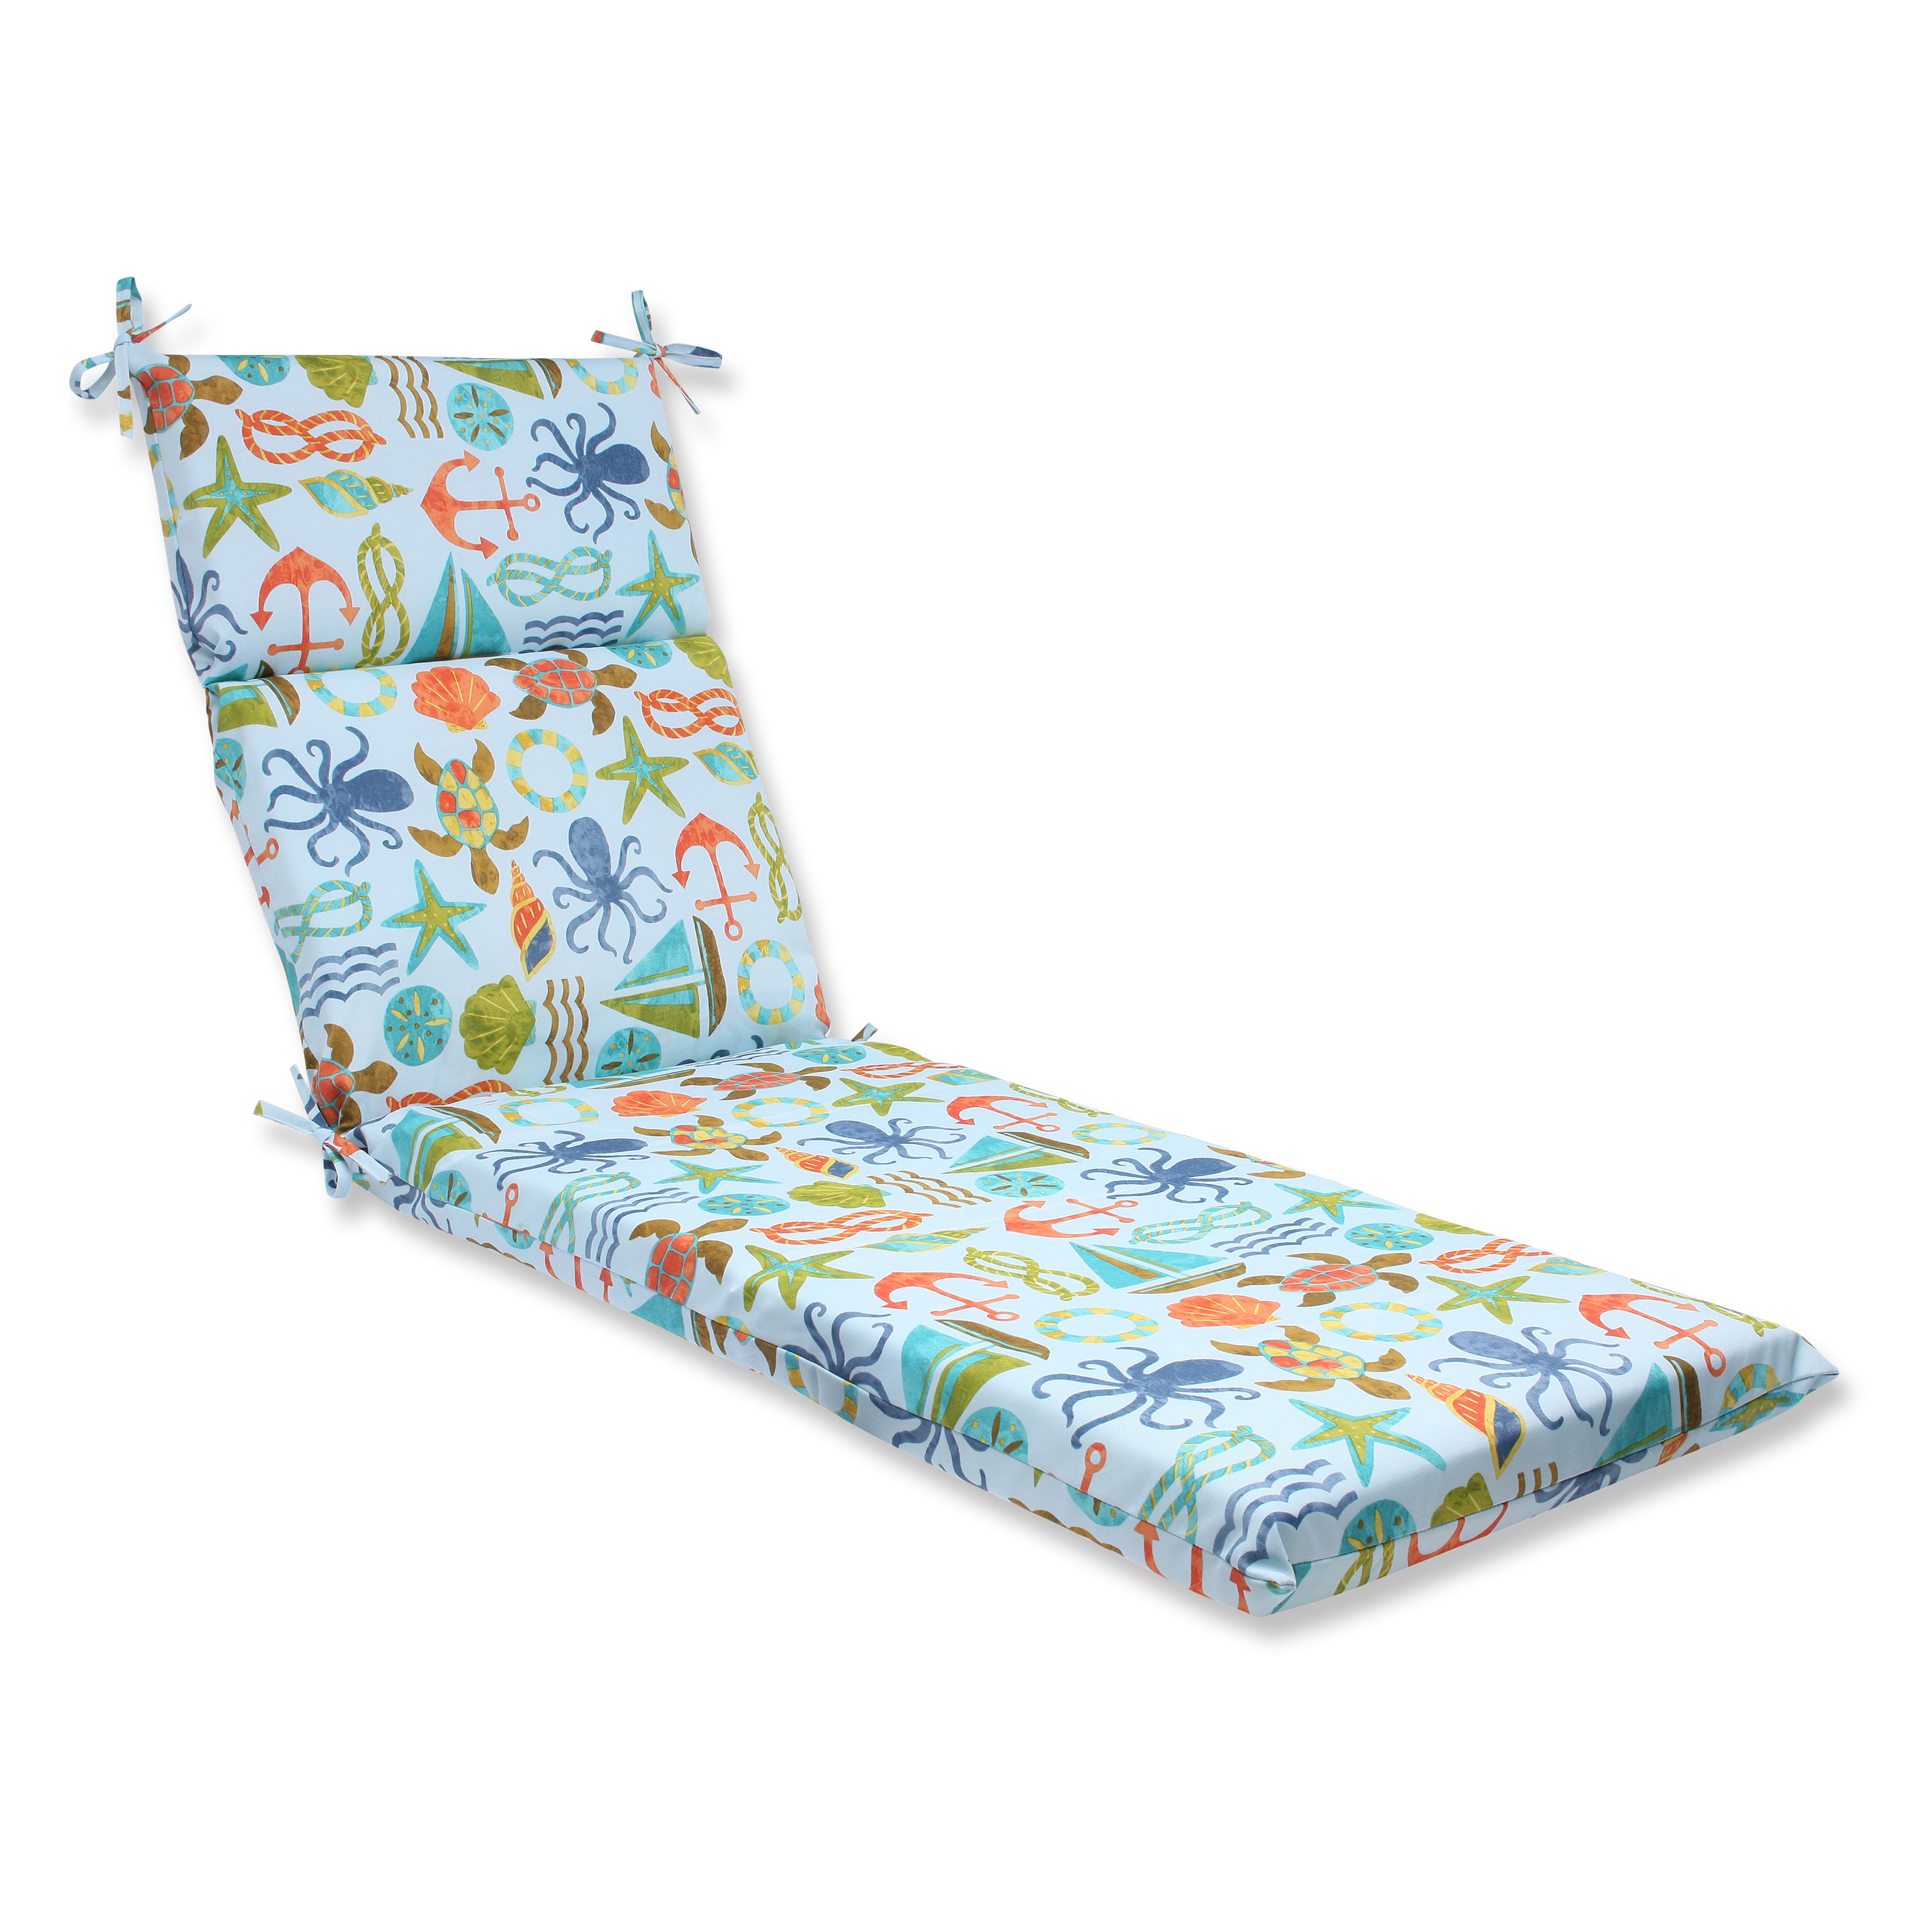 Pillow perfect seapoint chaise lounge cushion outdoor for Chaise lounge cushion covers outdoor